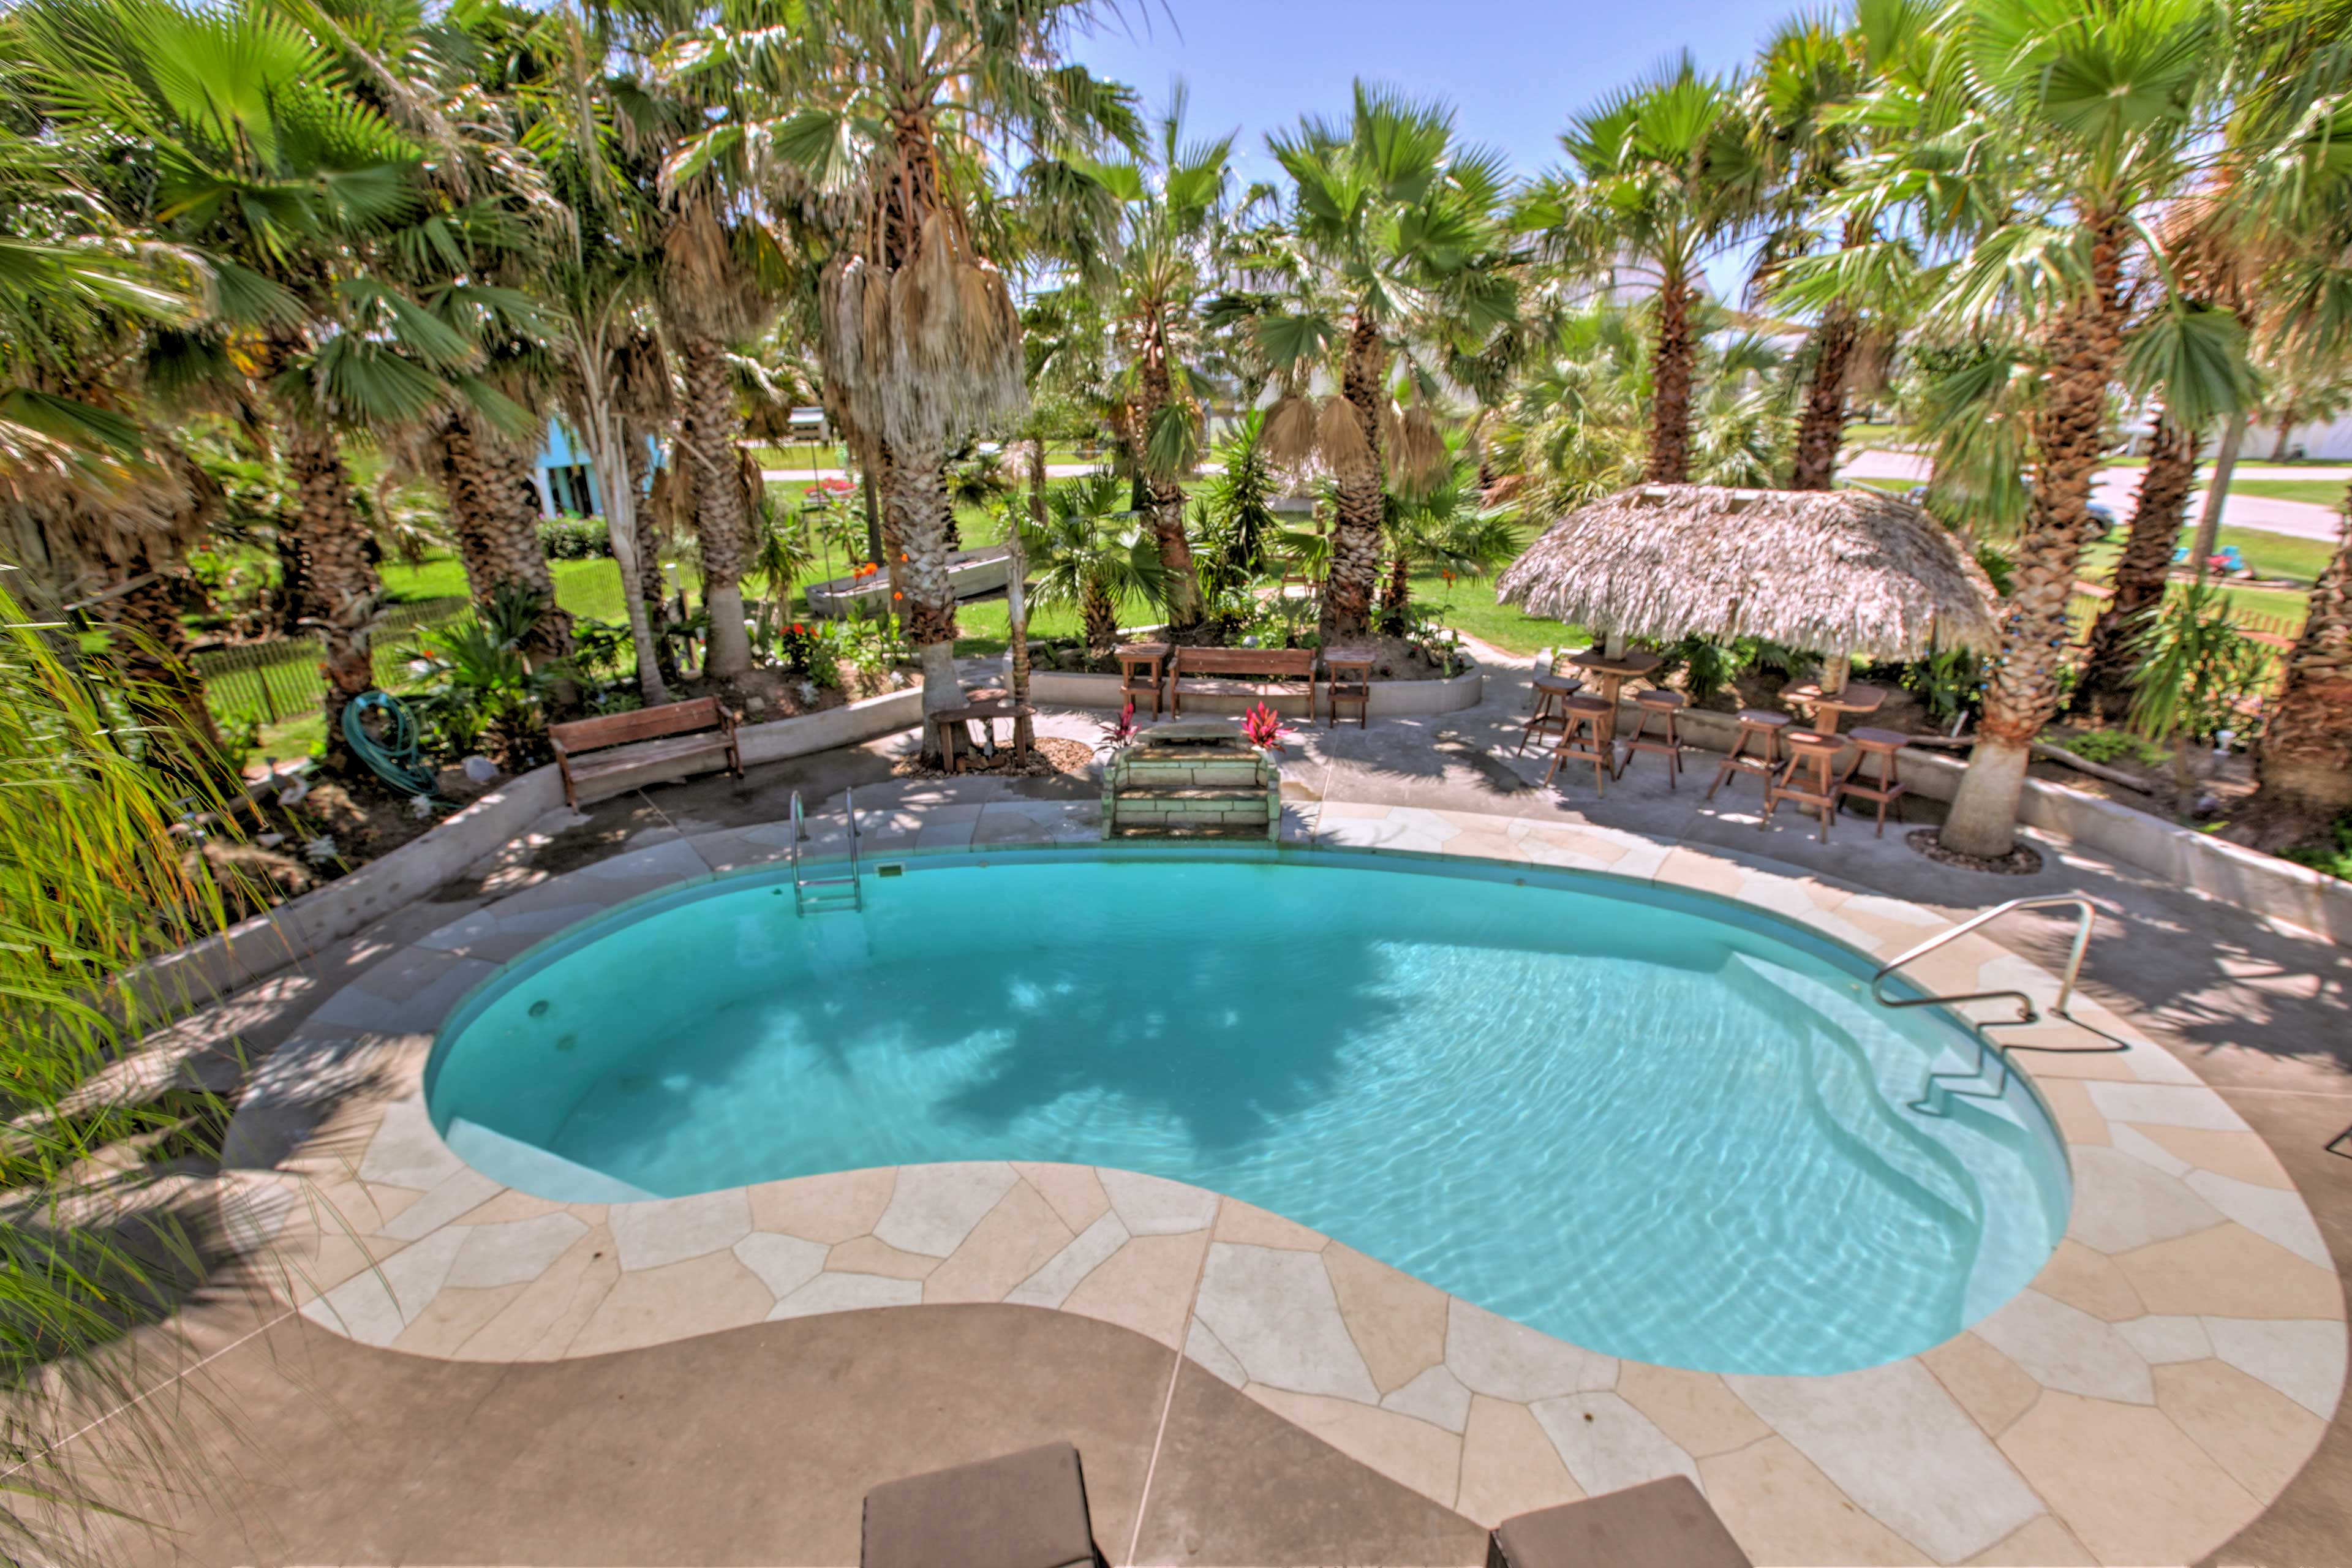 This stunning home is nestled in a lush, tropical garden less than a mile from the coast.